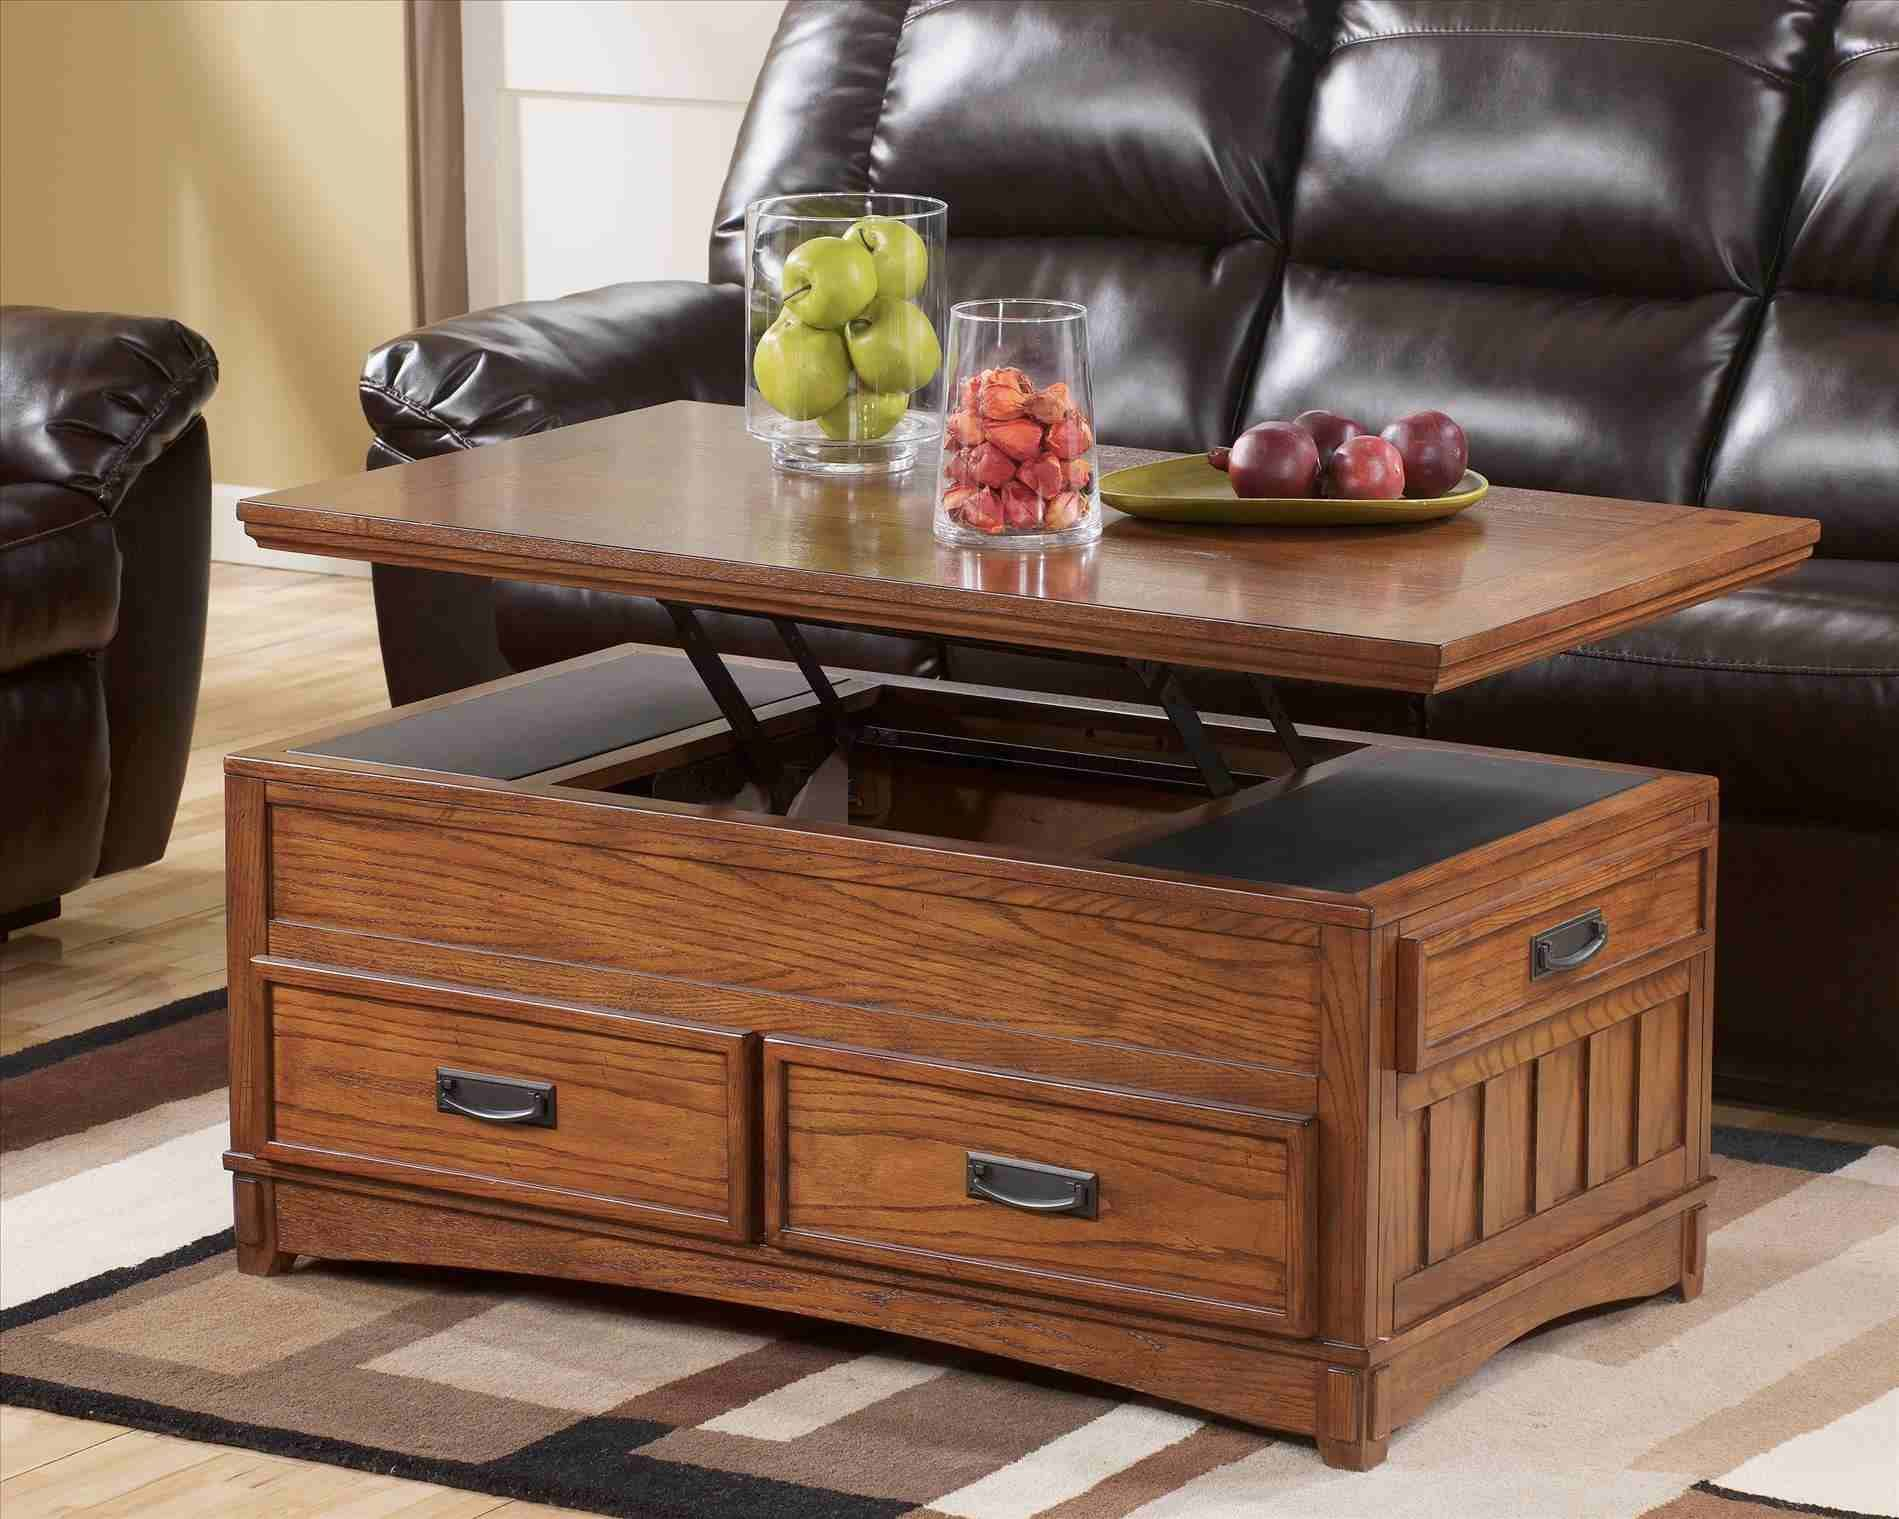 Coffee Table Storage Solutions Home Decor Coffee Tables With